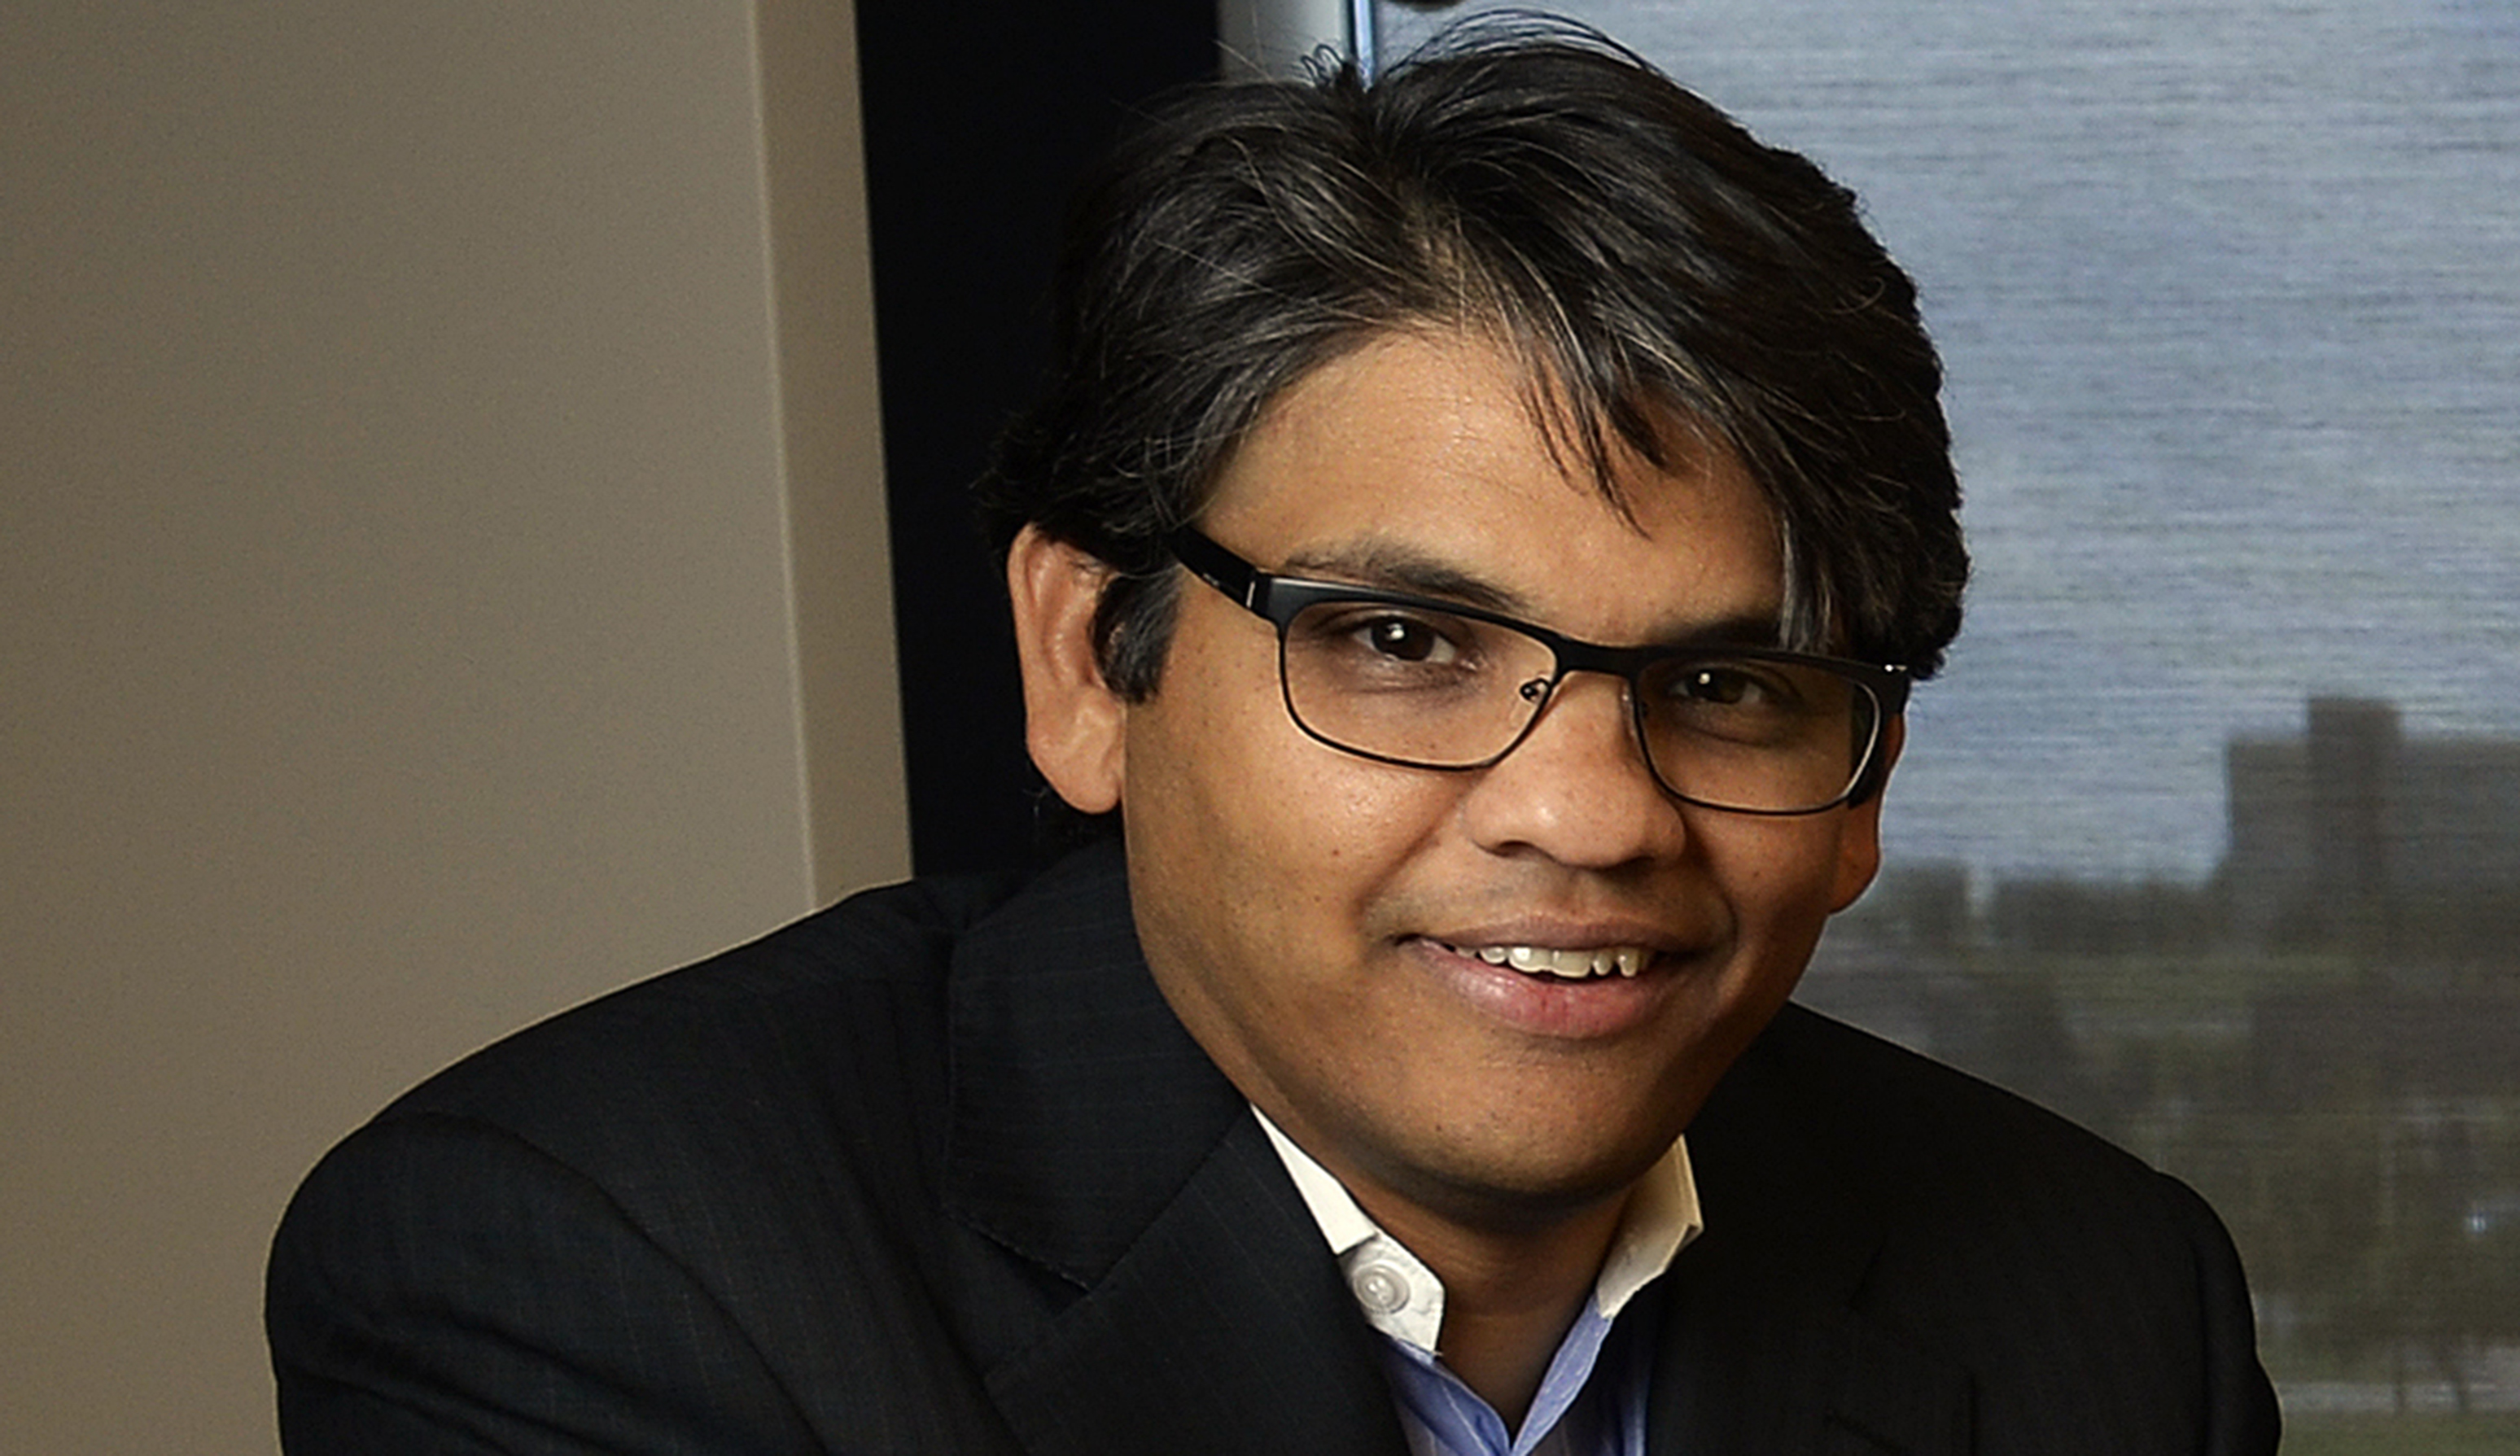 Cognizant Technology Solutions just acquired TriZetto for $2.7 billion in cash.